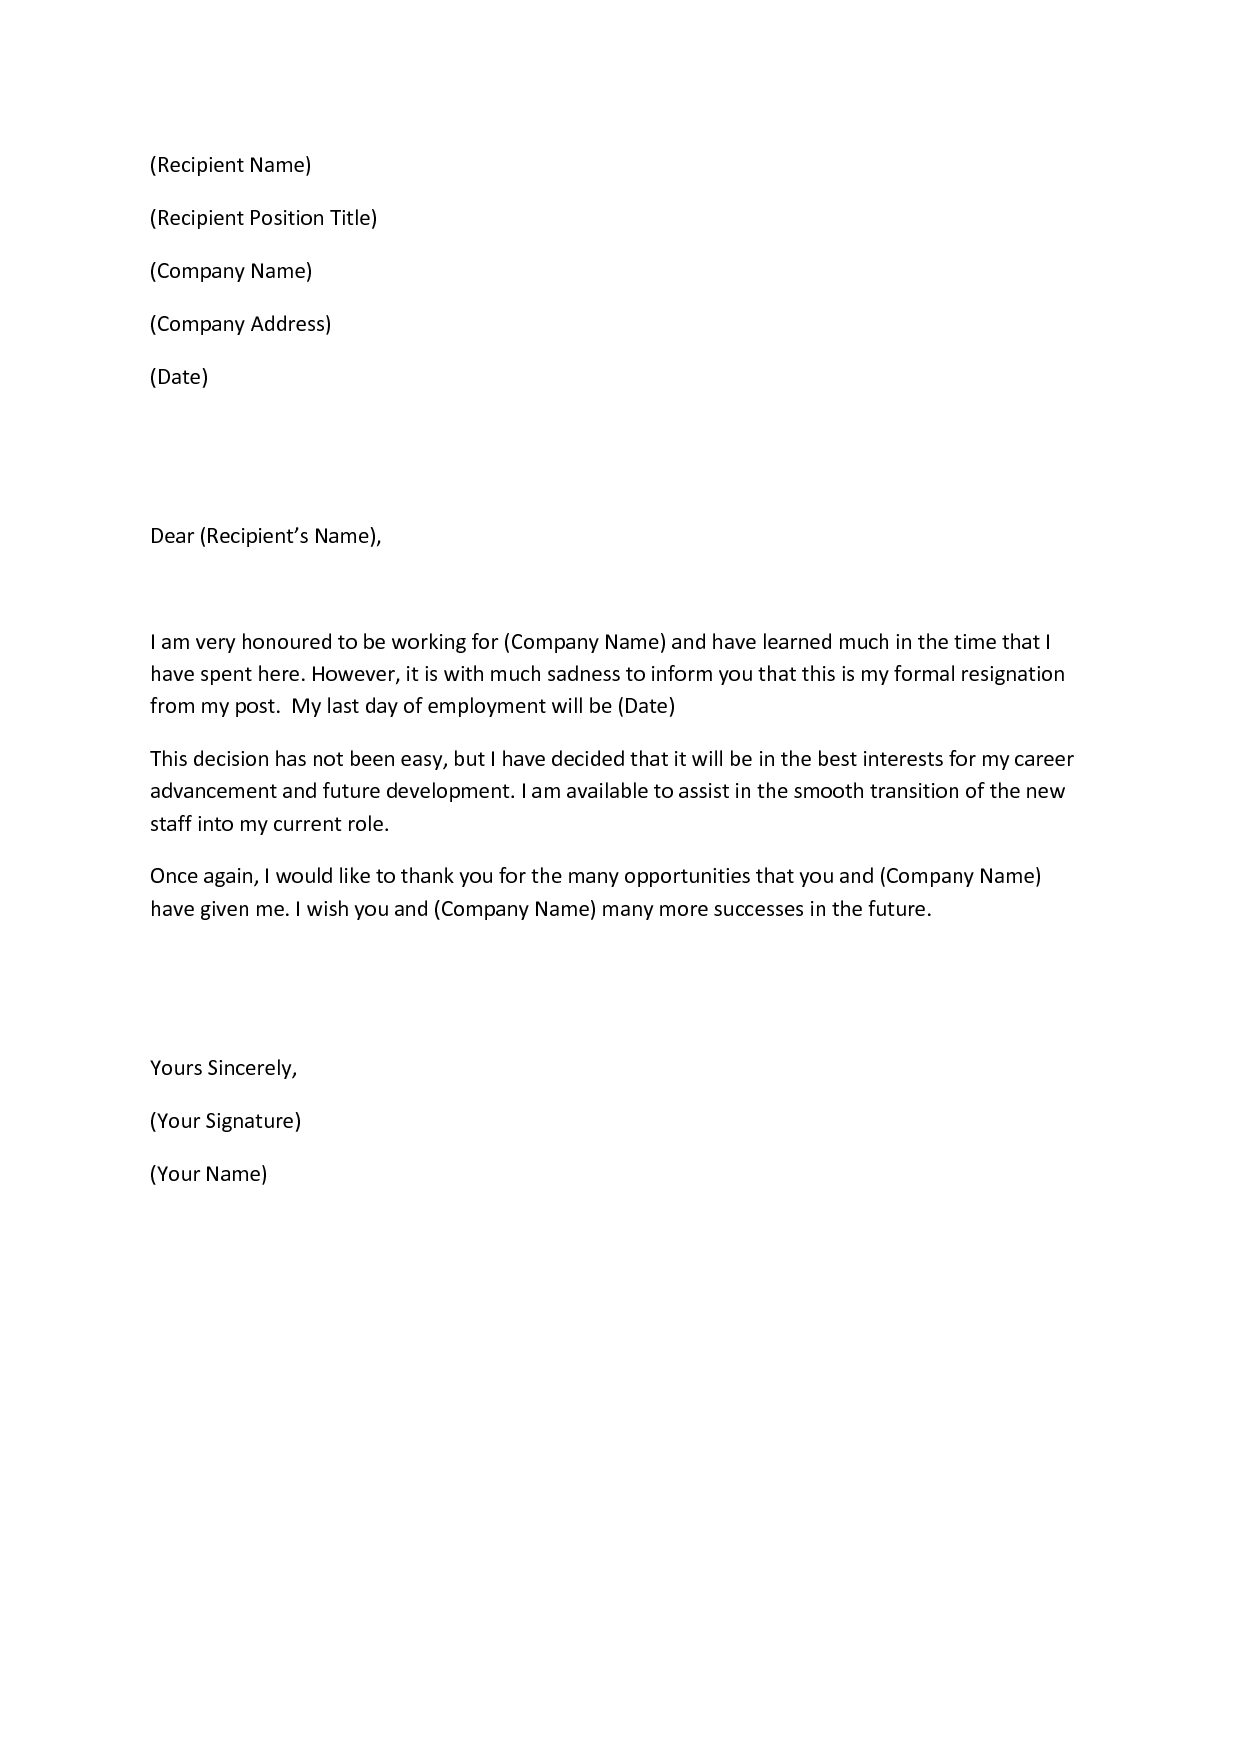 example of resignation letter   google search   letters of    example of resignation letter   google search   letters of resignations   pinterest   resignation letter  letters and letter templates